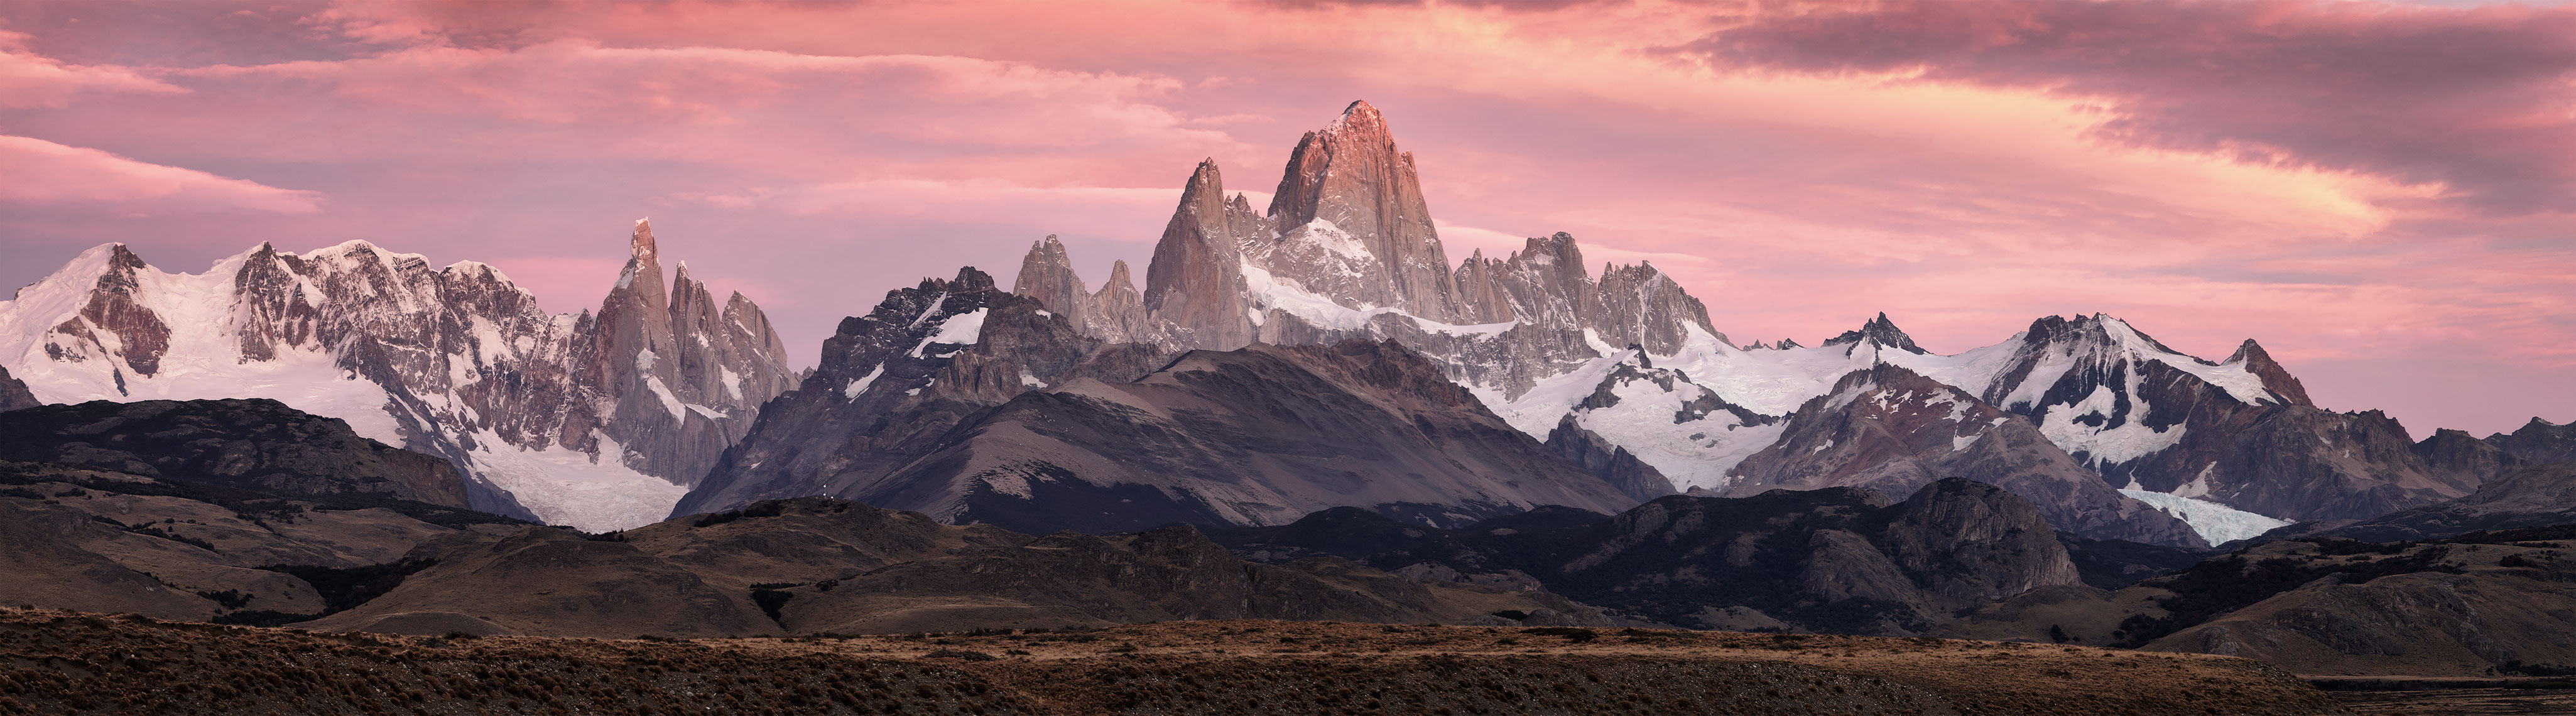 patagonia_range_pano_march_2019_web